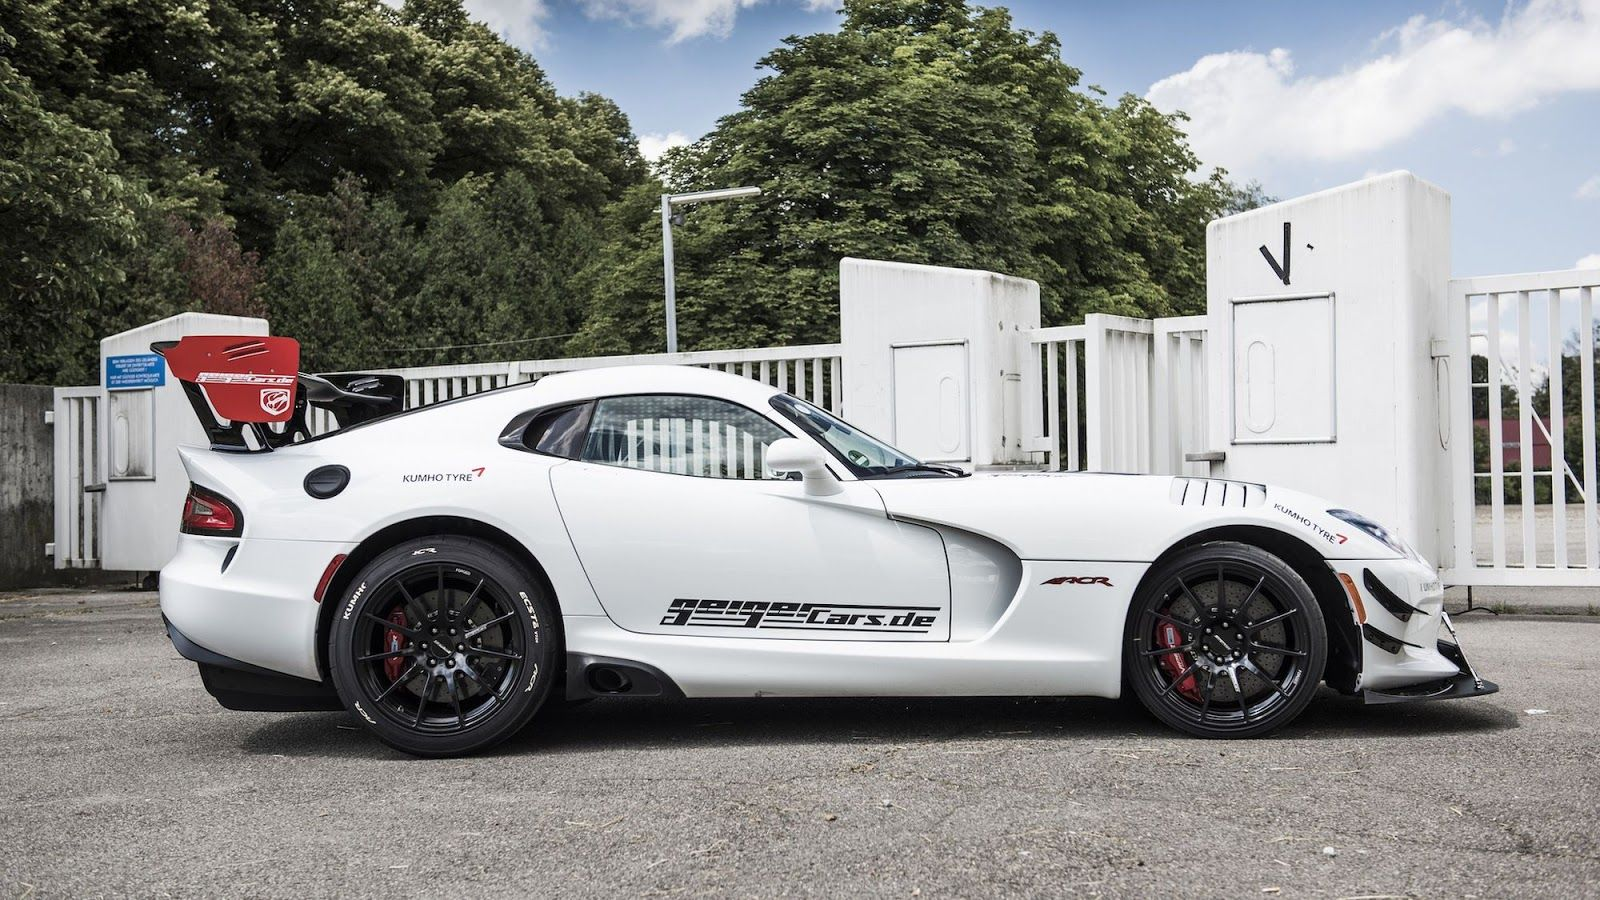 Dodge Viper Acr Gets Body Kit And Power Hike To 765 Hp By Geigercars Dodge Viper Viper Acr Dodge